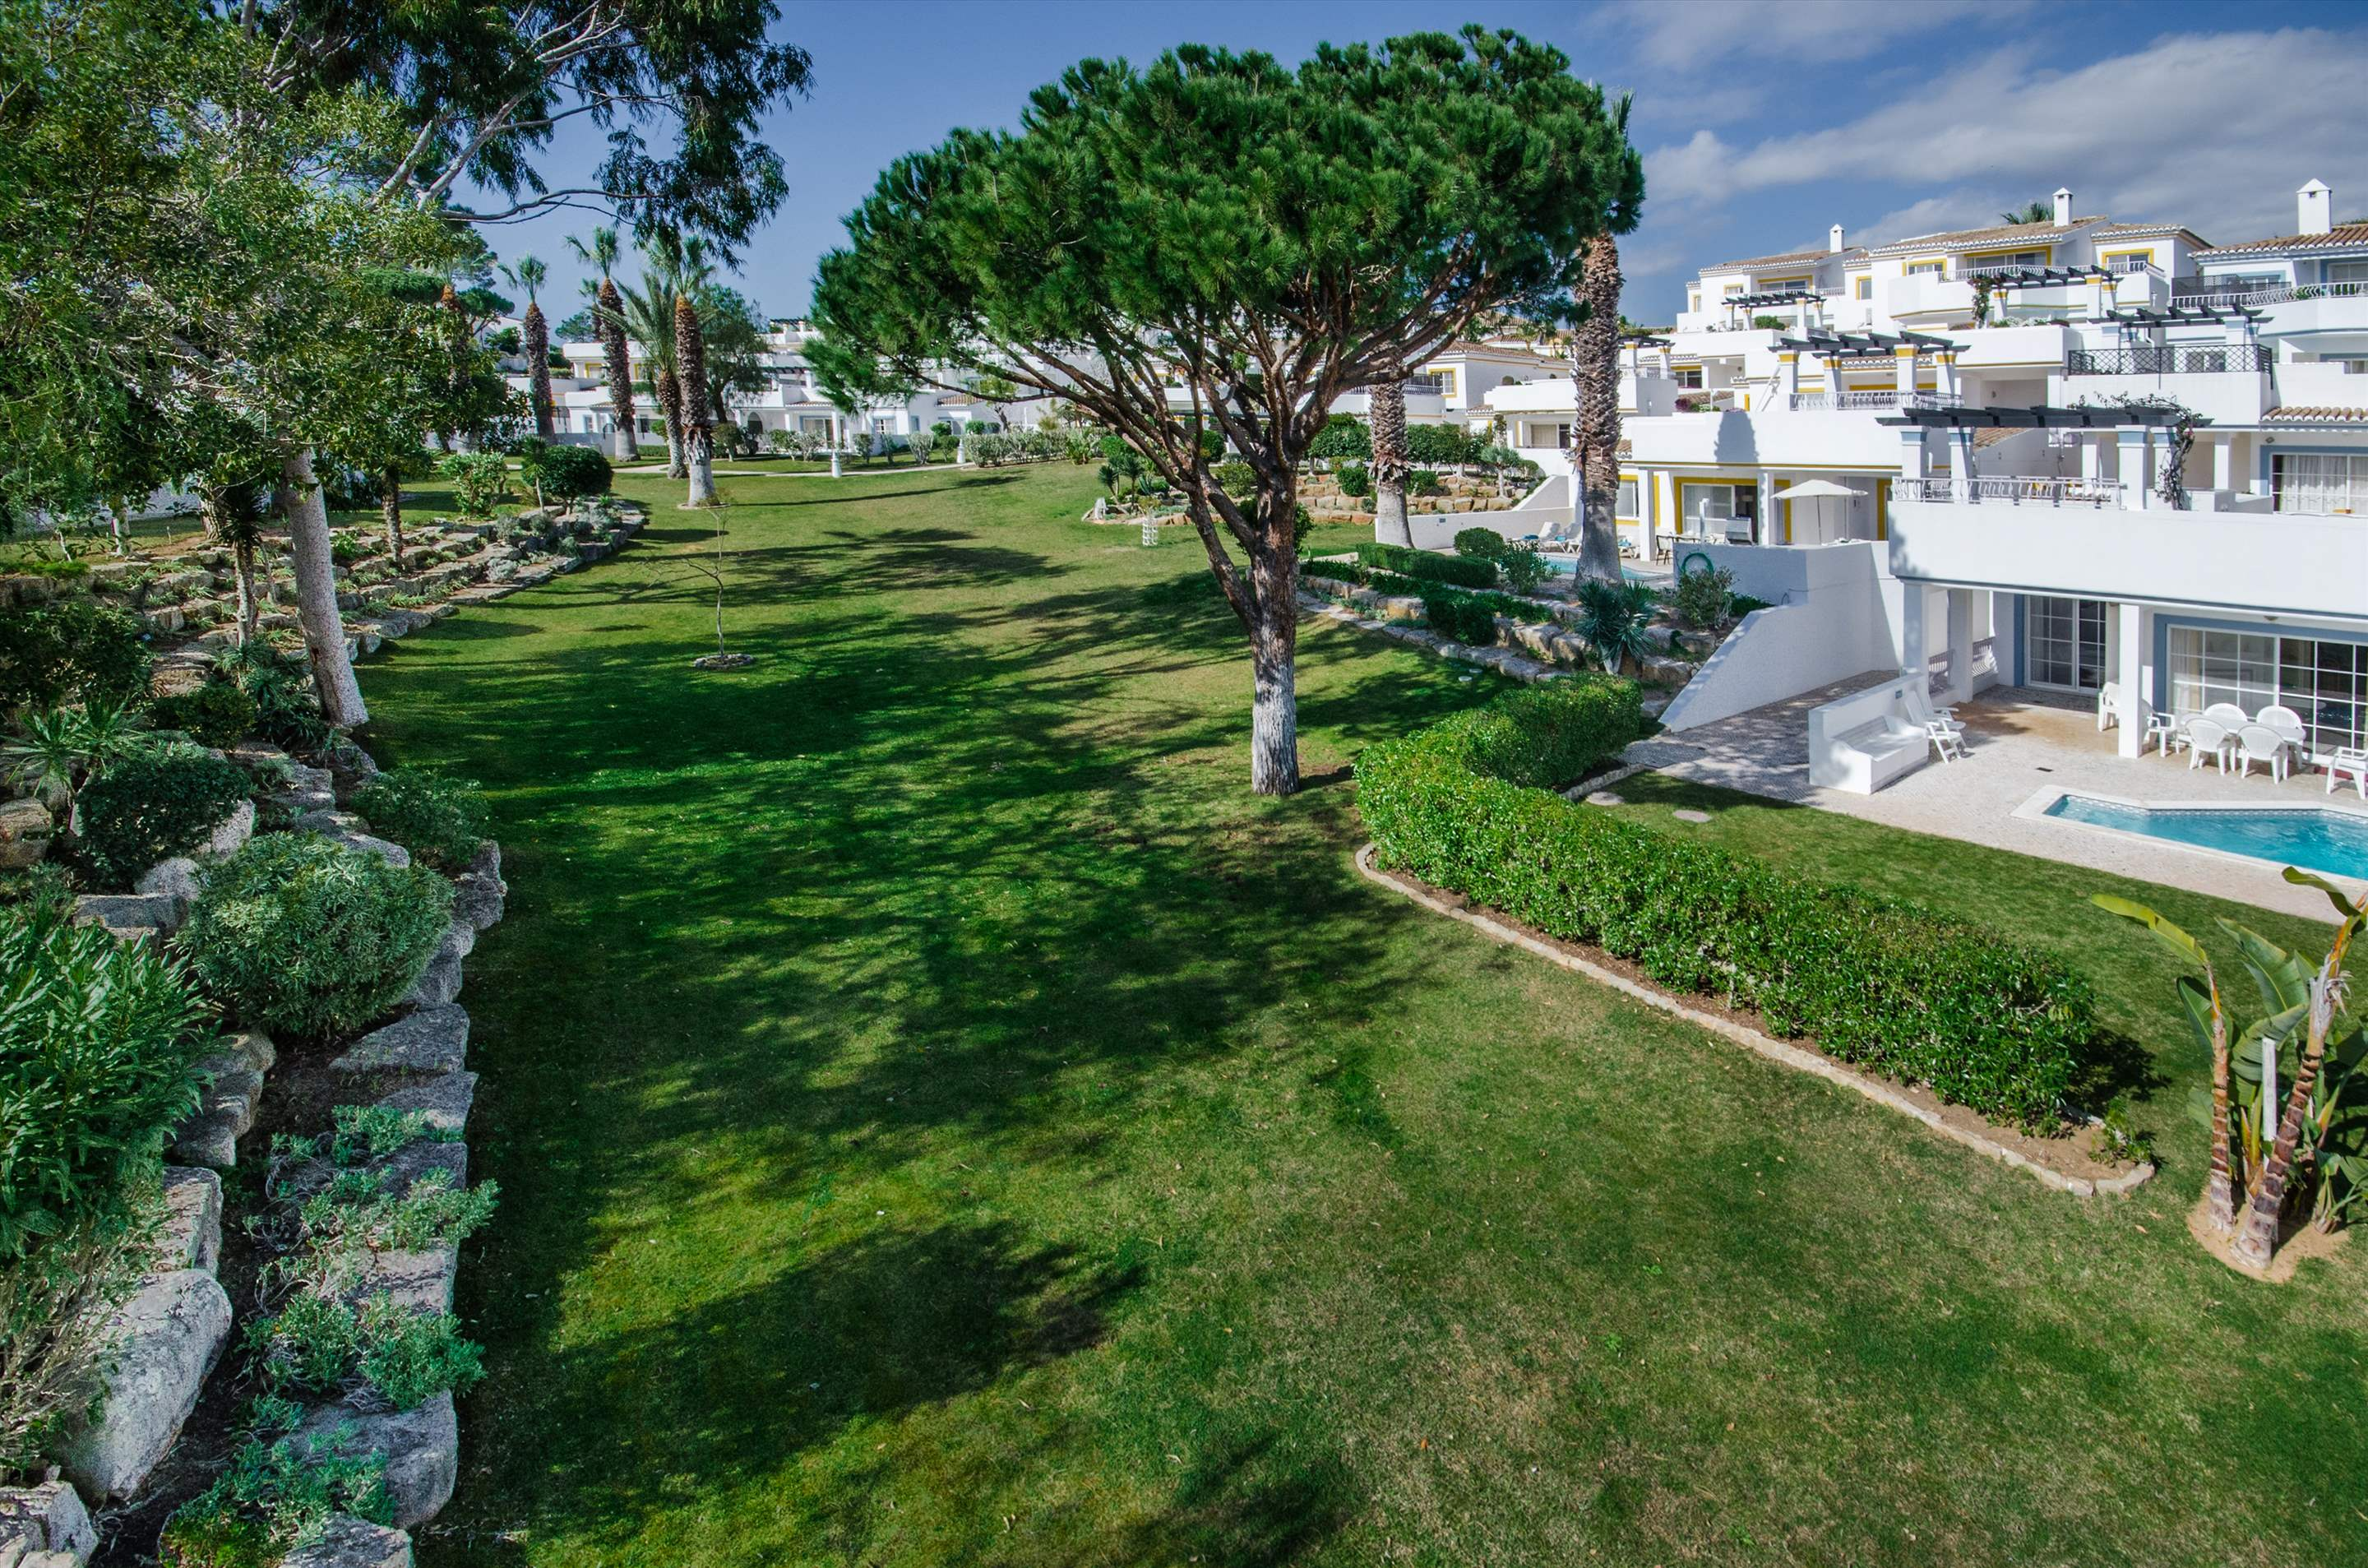 Four Seasons Fairway 2 Bed Hillside Apt -Jacuzzi, Sunday Arrival, 2 bedroom villa in Four Seasons Fairways, Algarve Photo #2